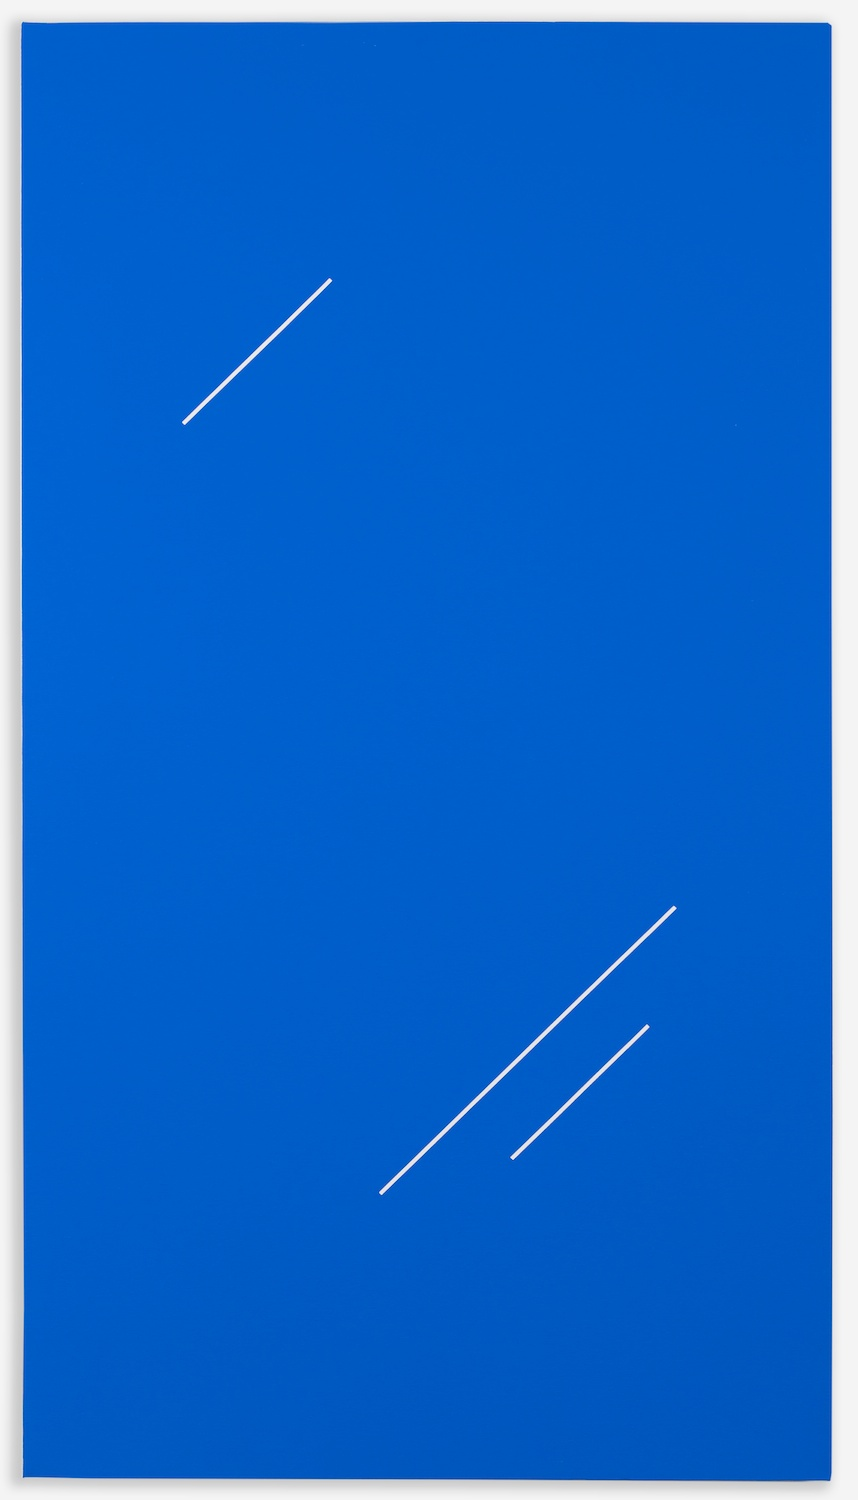 Paul Cowan  BCEAUSE THE SKY IS BULE   2013 Chroma-key blue paint on canvas  48h x 26w in  PC091